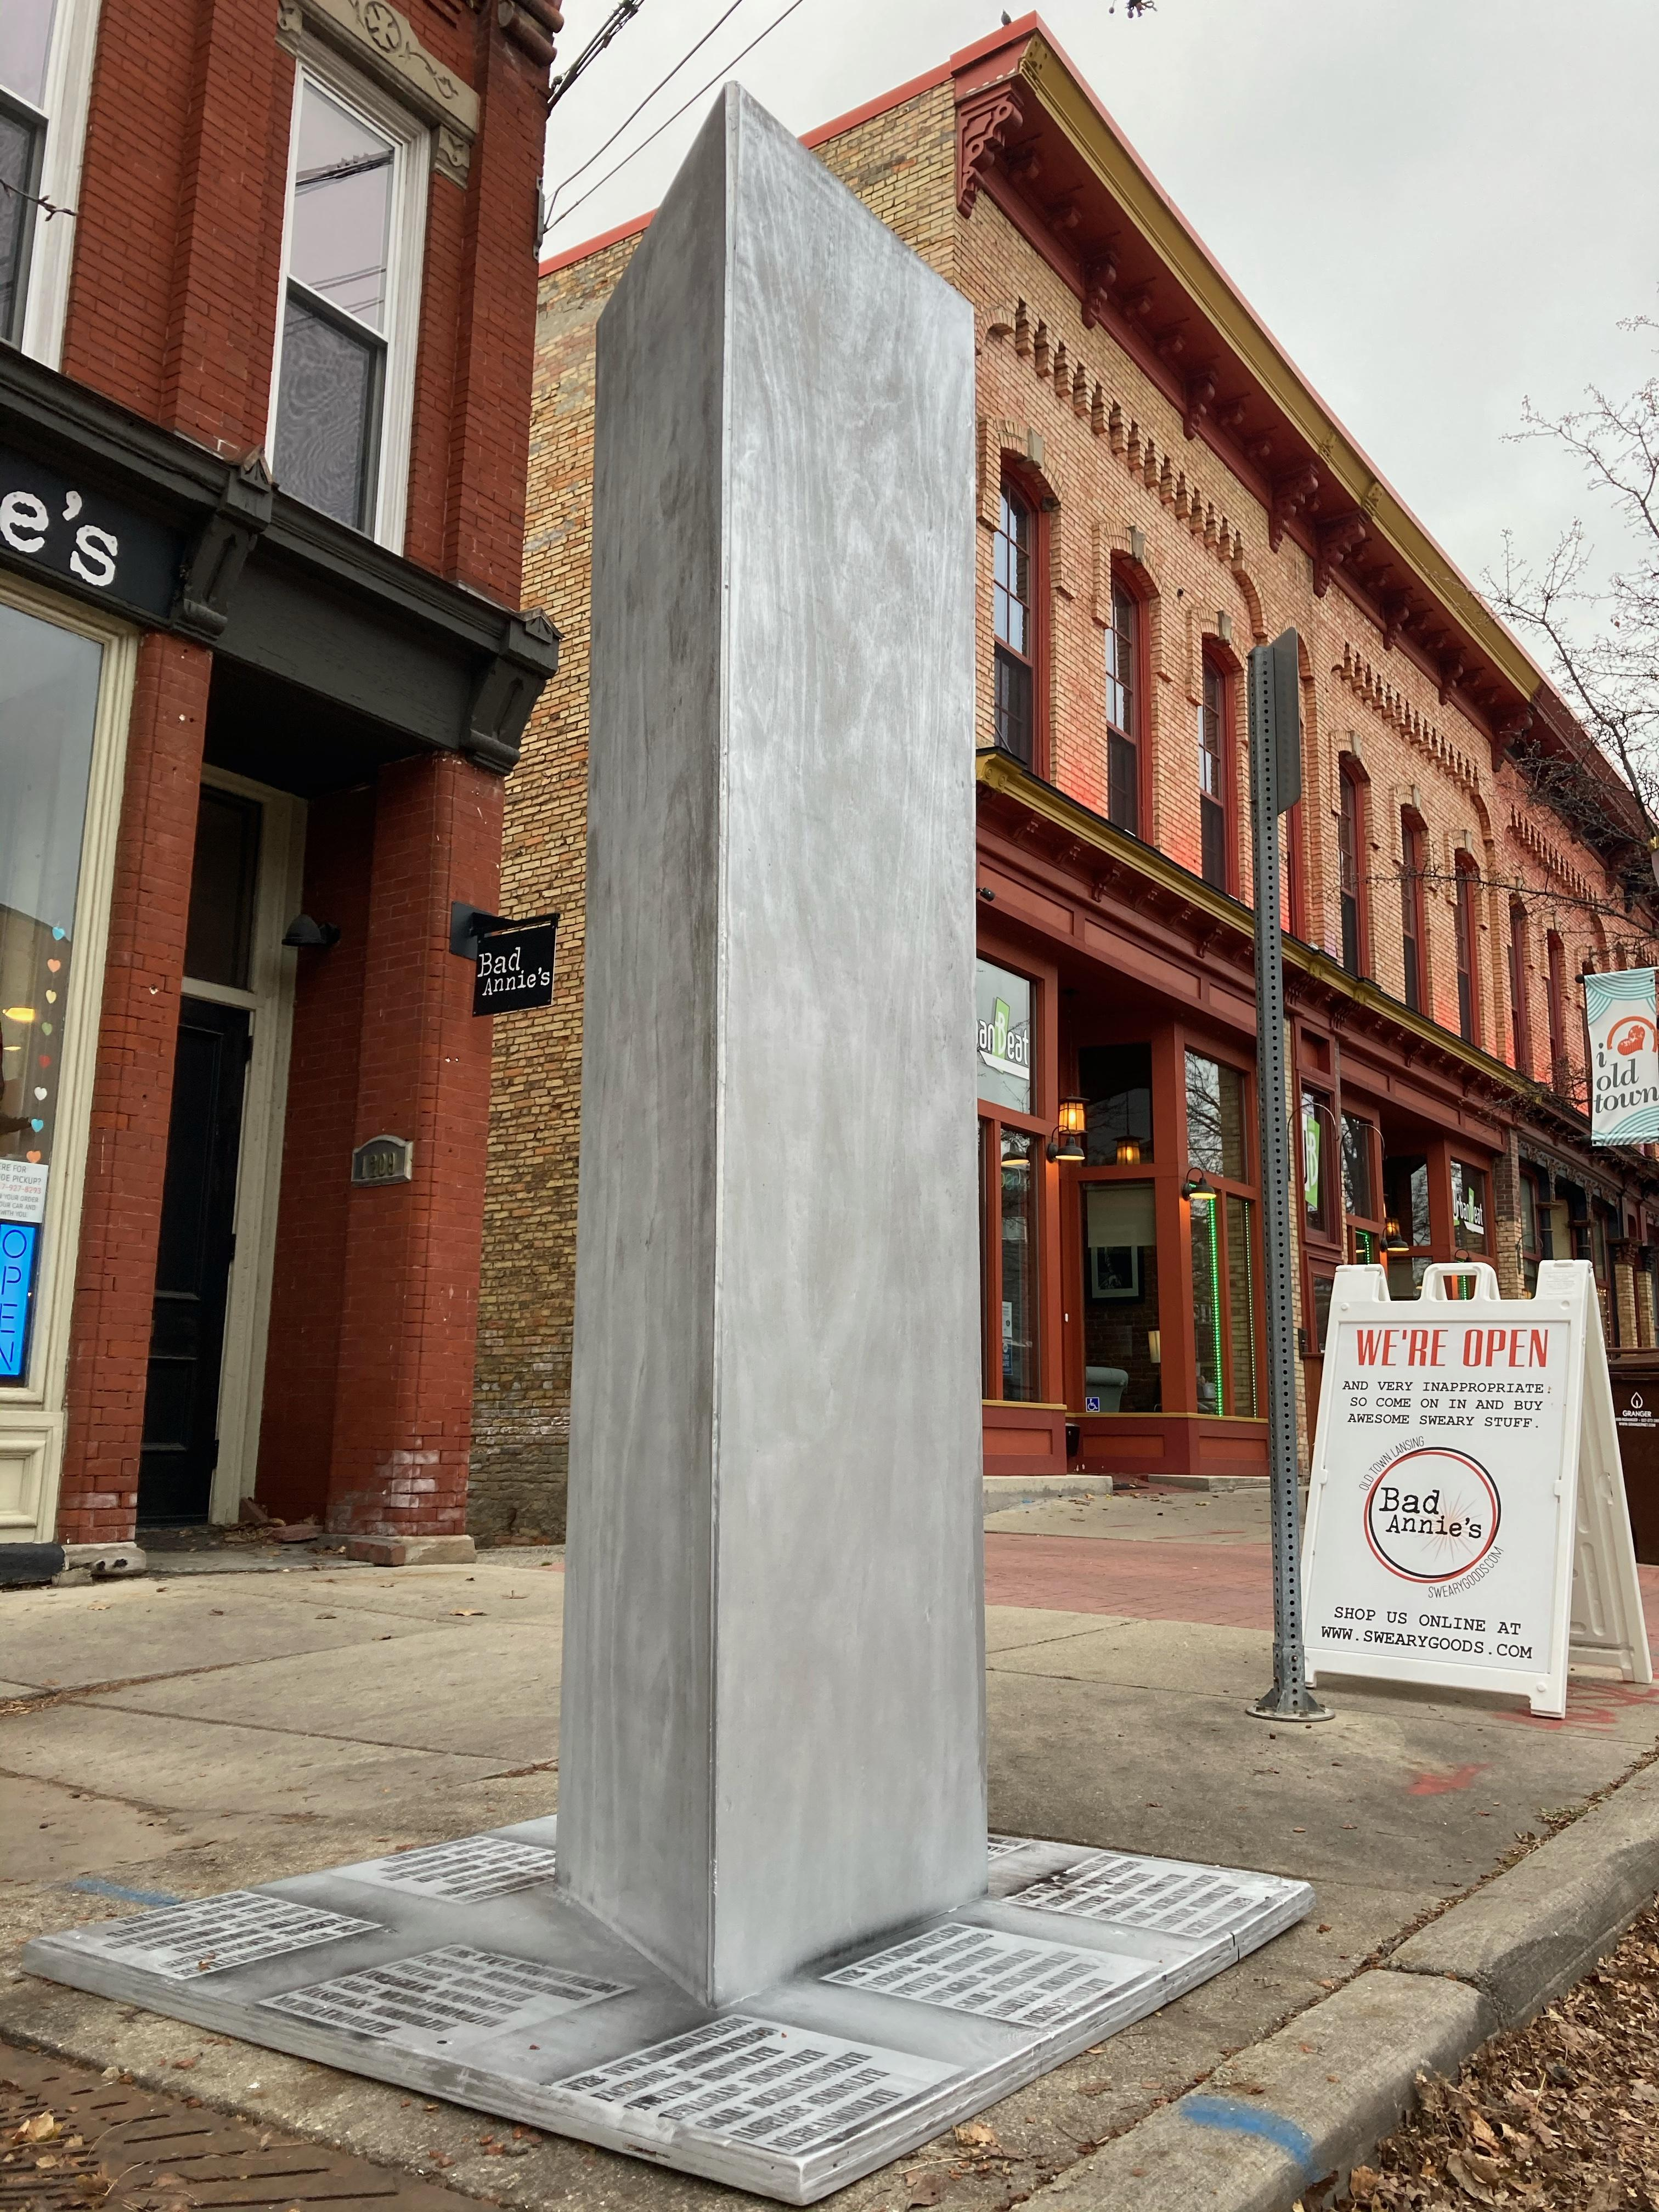 A monolith, mimicking others that have appeared in spots around the globe recently, appeared overnight in Lansing, Michigan, on Tuesday, Dec. 8, 2020, in the city's Old Town district. (WWMT/ Rachel Louise Just)